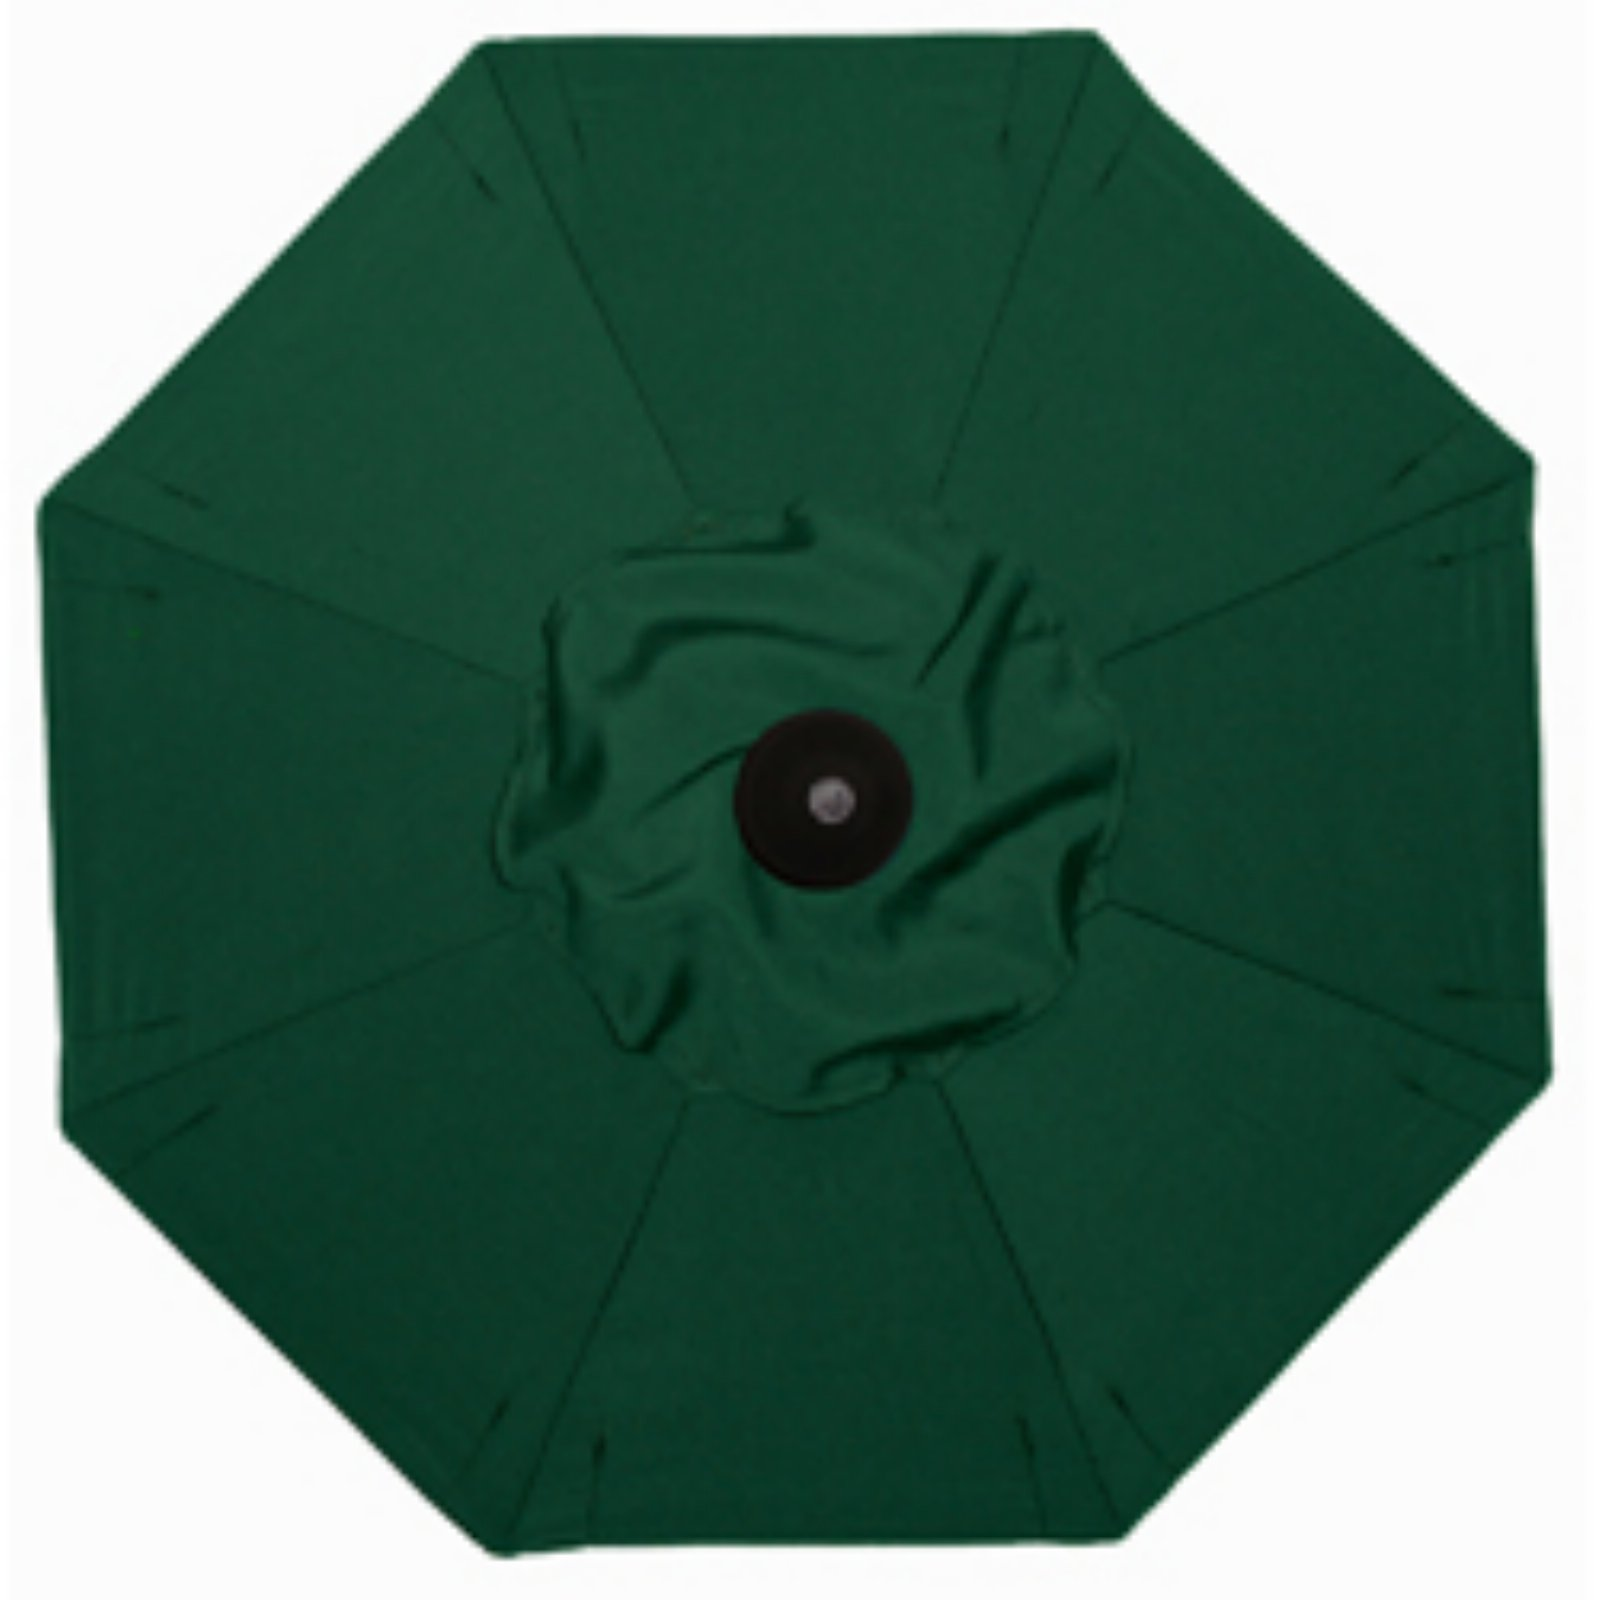 Galtech 6 ft. Wood Suncrylic Cafe Market Patio Umbrella